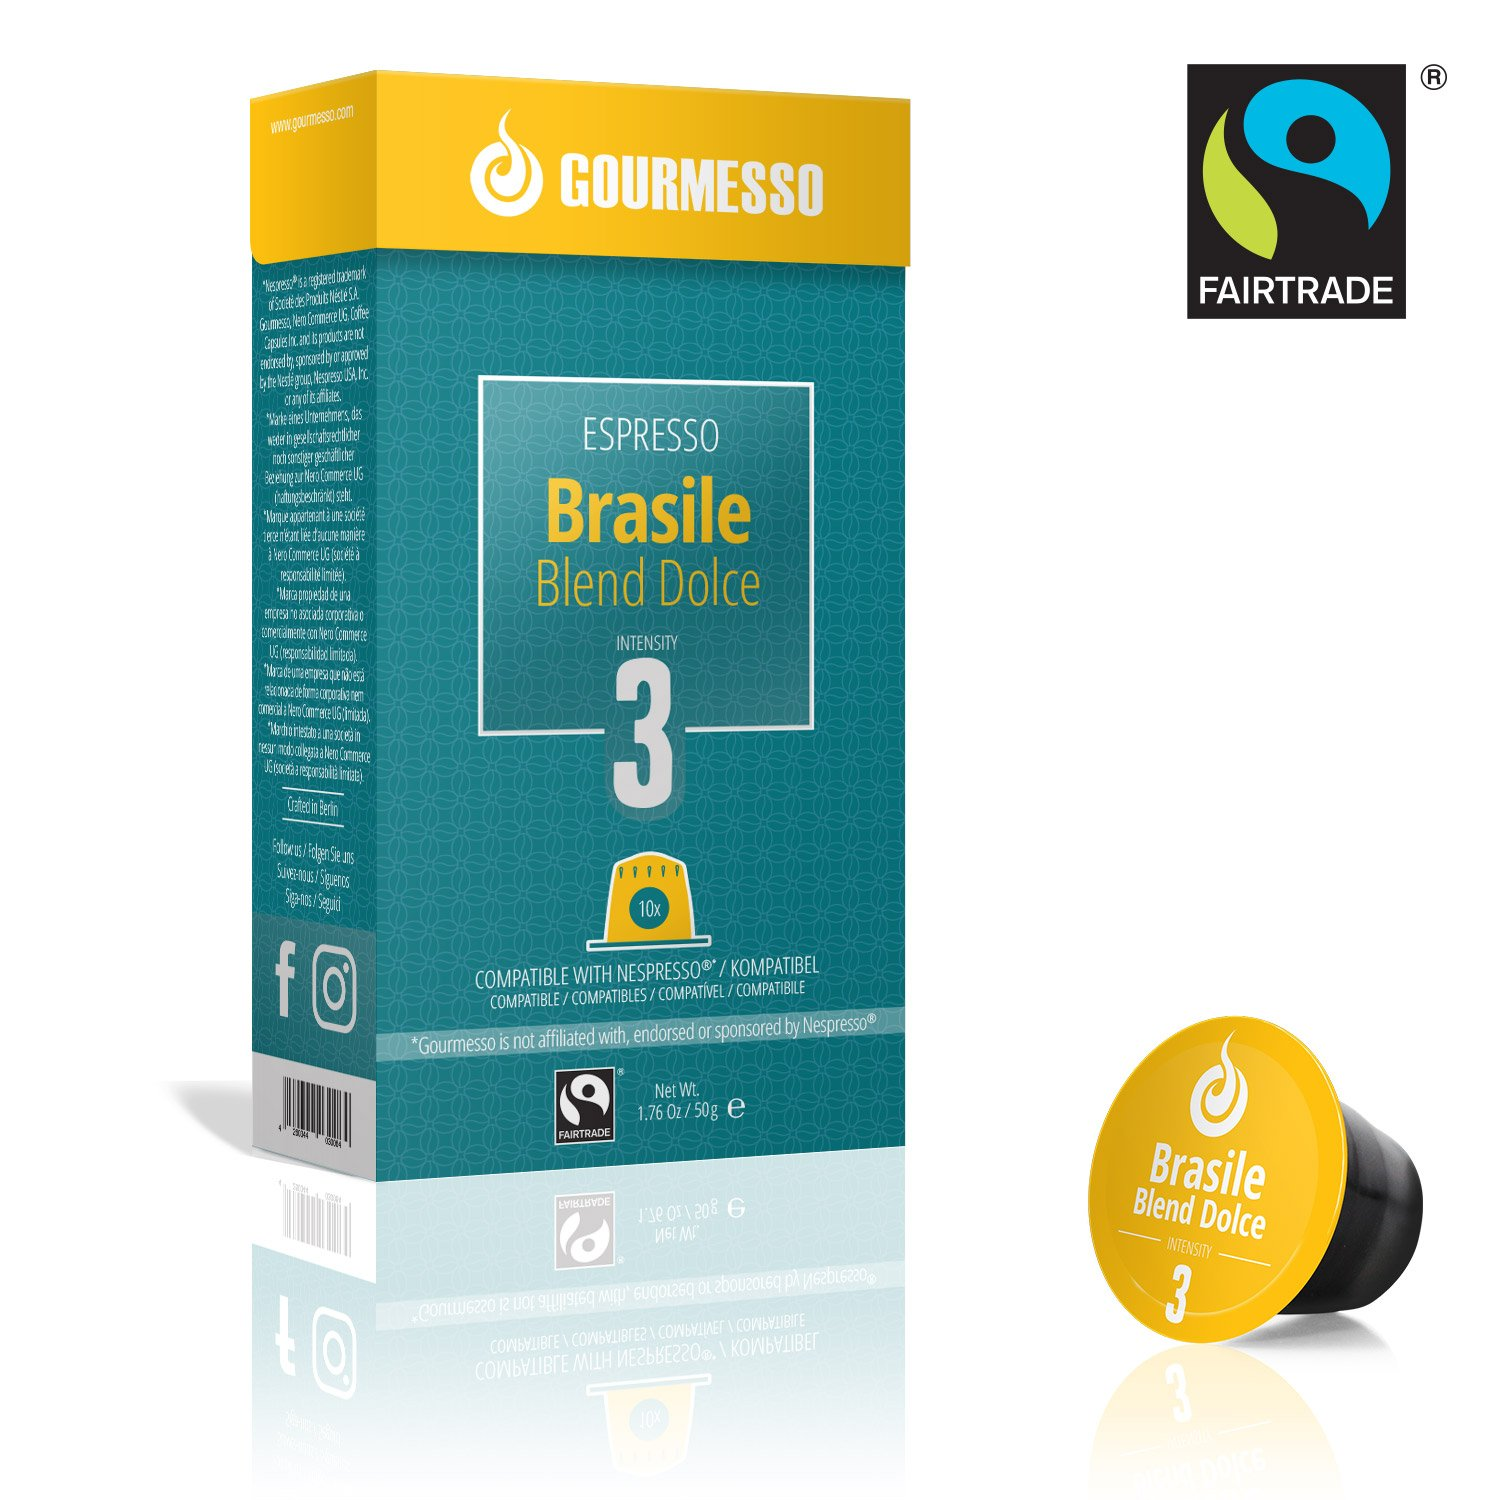 Gourmesso Brasile Blend Dolce (100 Capsulas): Amazon.es ...